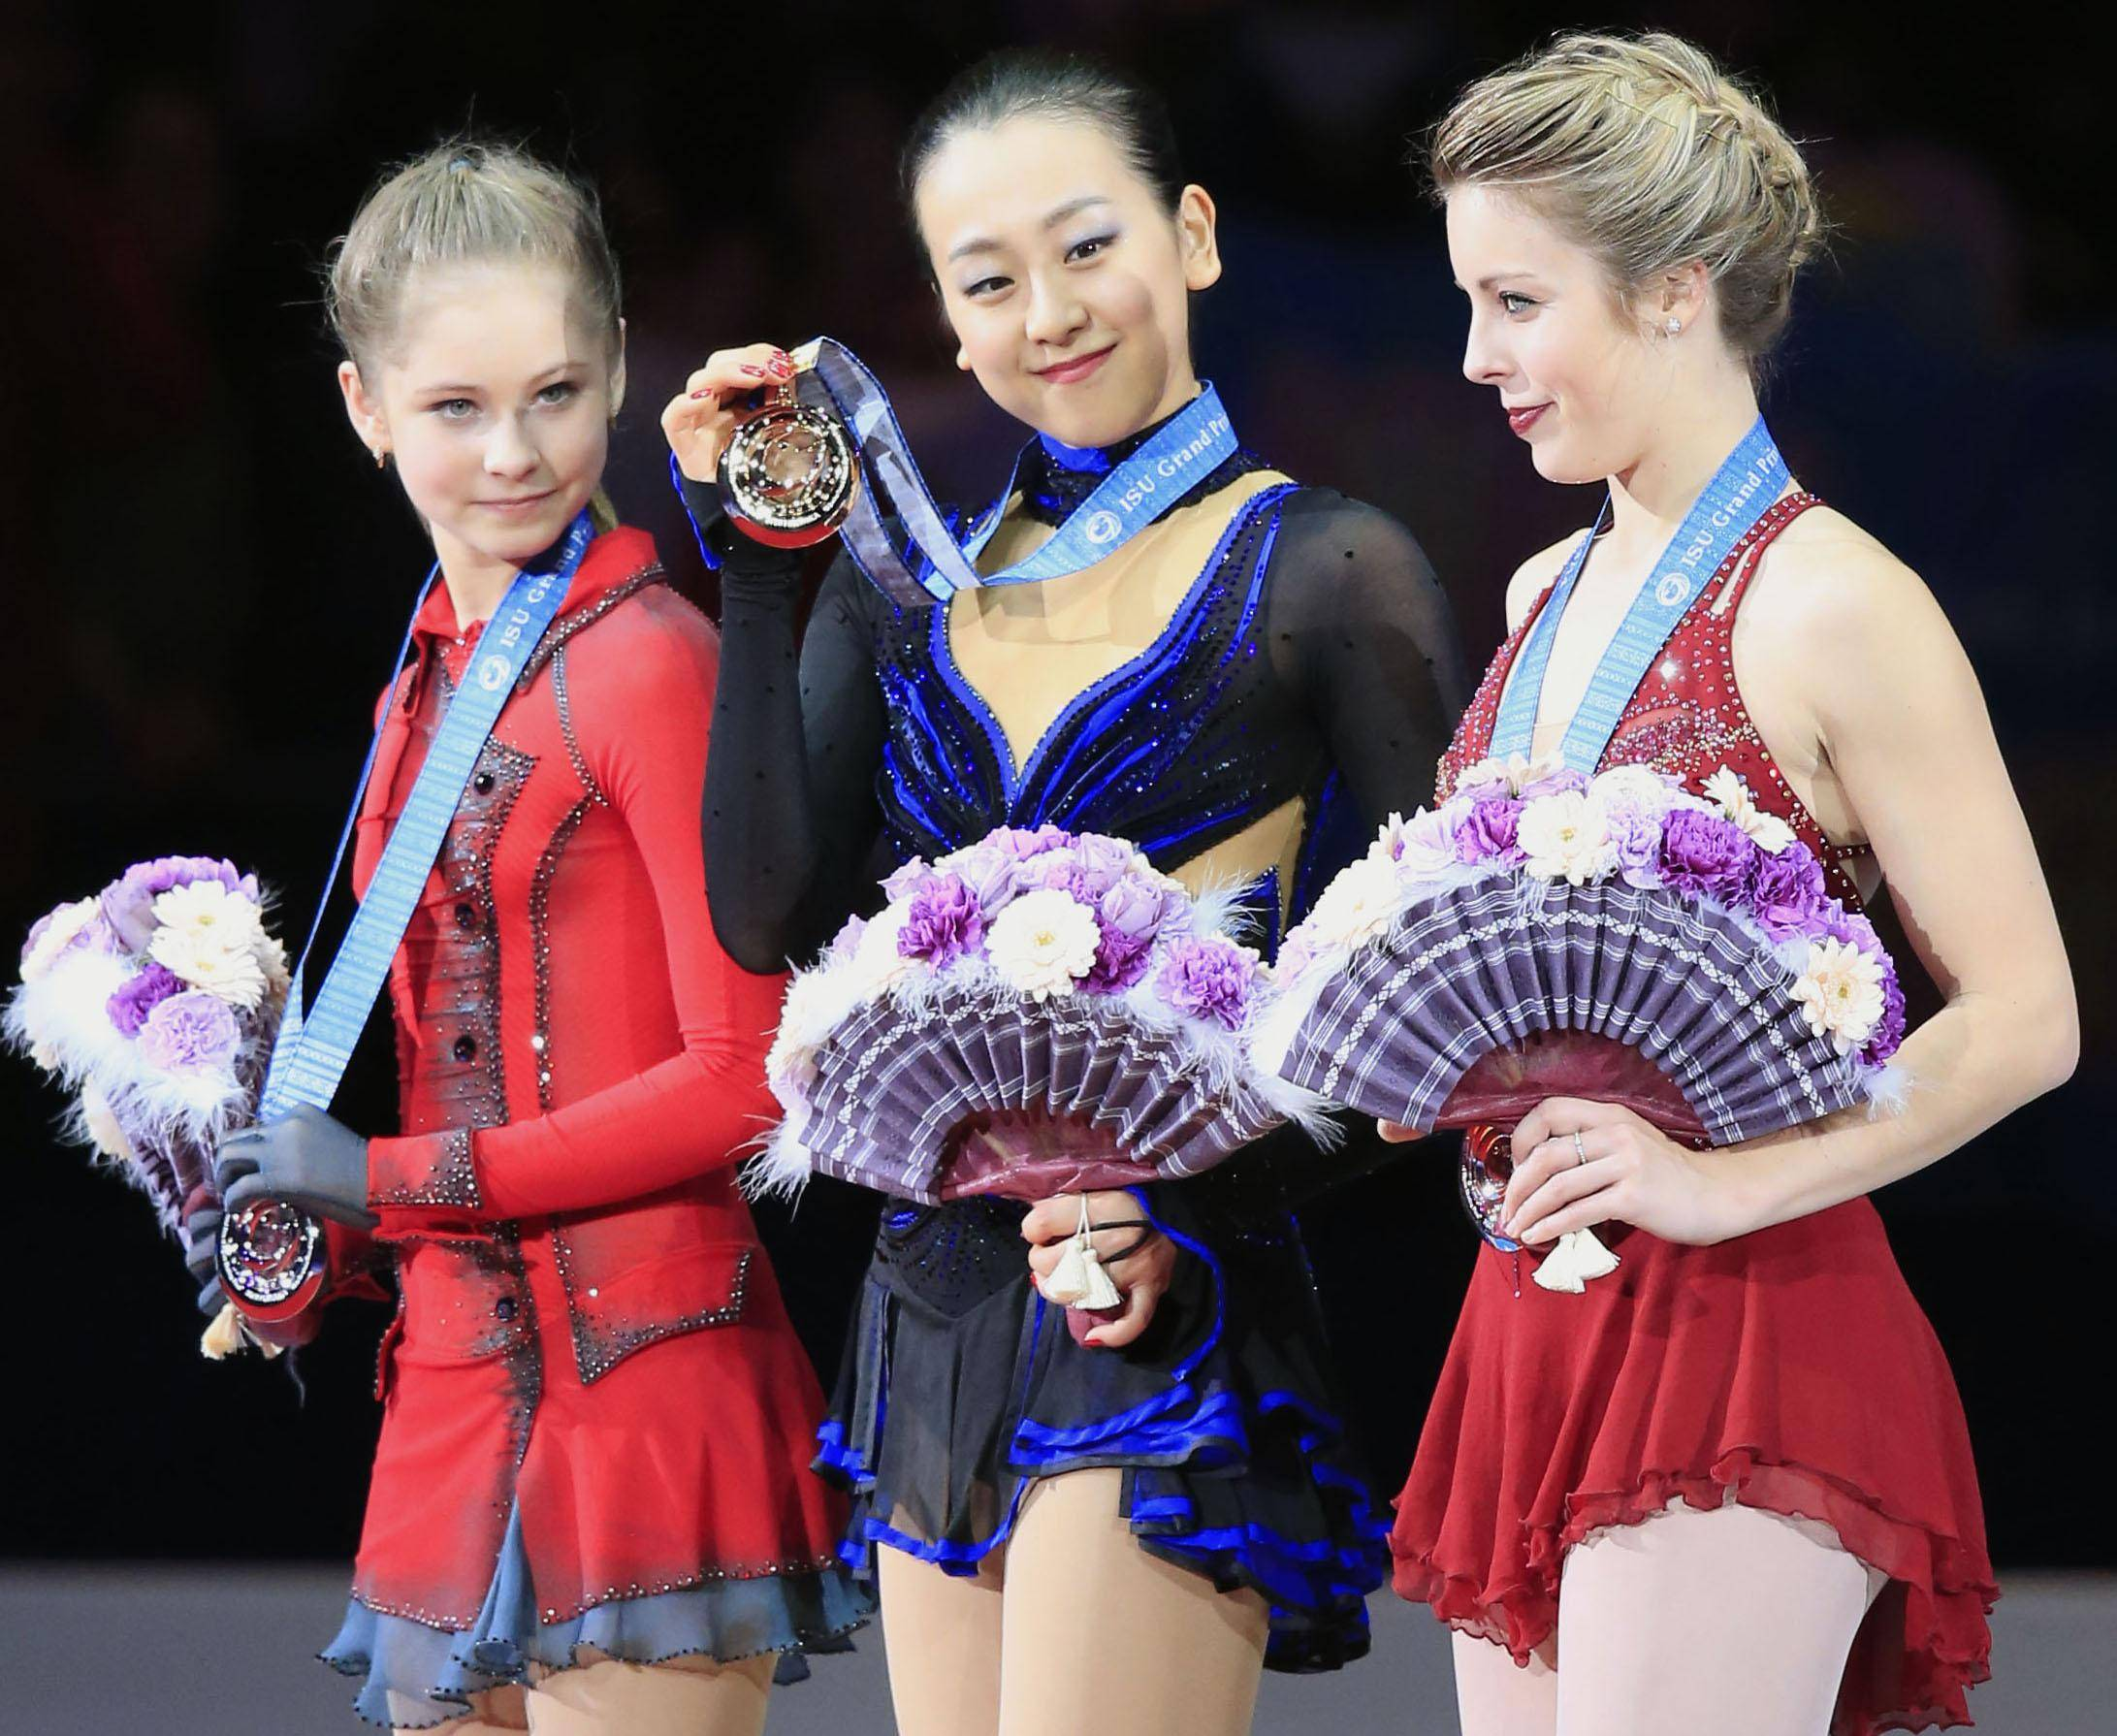 A reason for pride: Mao Asada (center) is joined by silver medalist Julia Lipnitskaia (left) and bronze medalist Ashley Wagner during the awards ceremony on Satuday night in Fukuoka. | KYODO